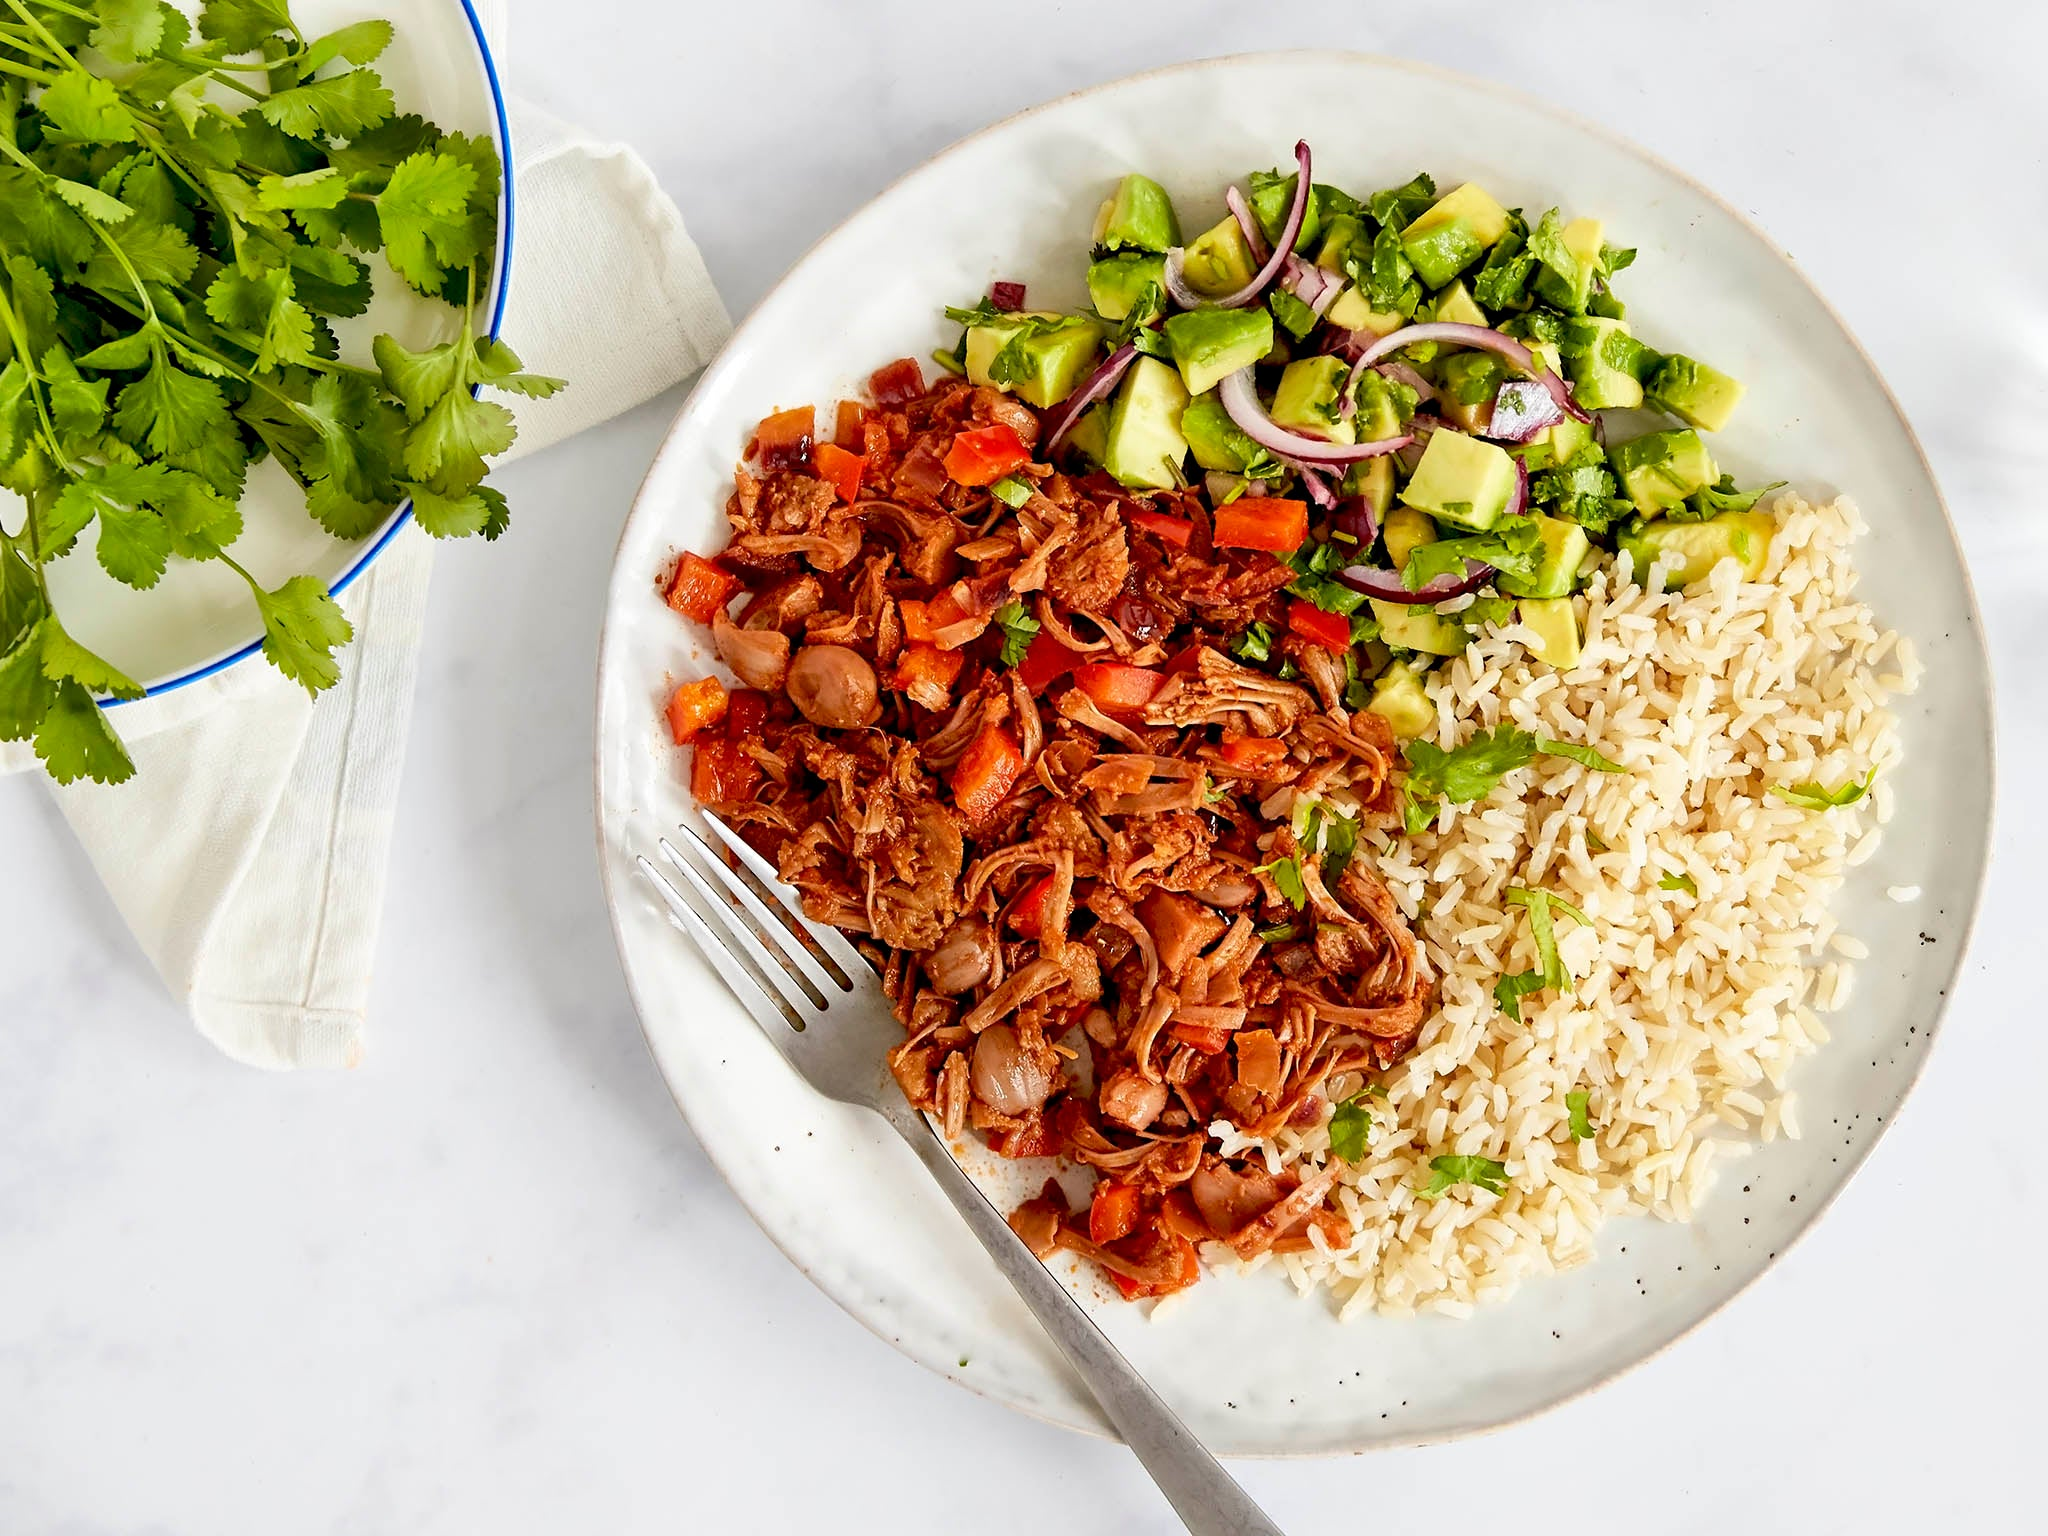 How to make pulled barbecue jackfruit and avocado salsa 1